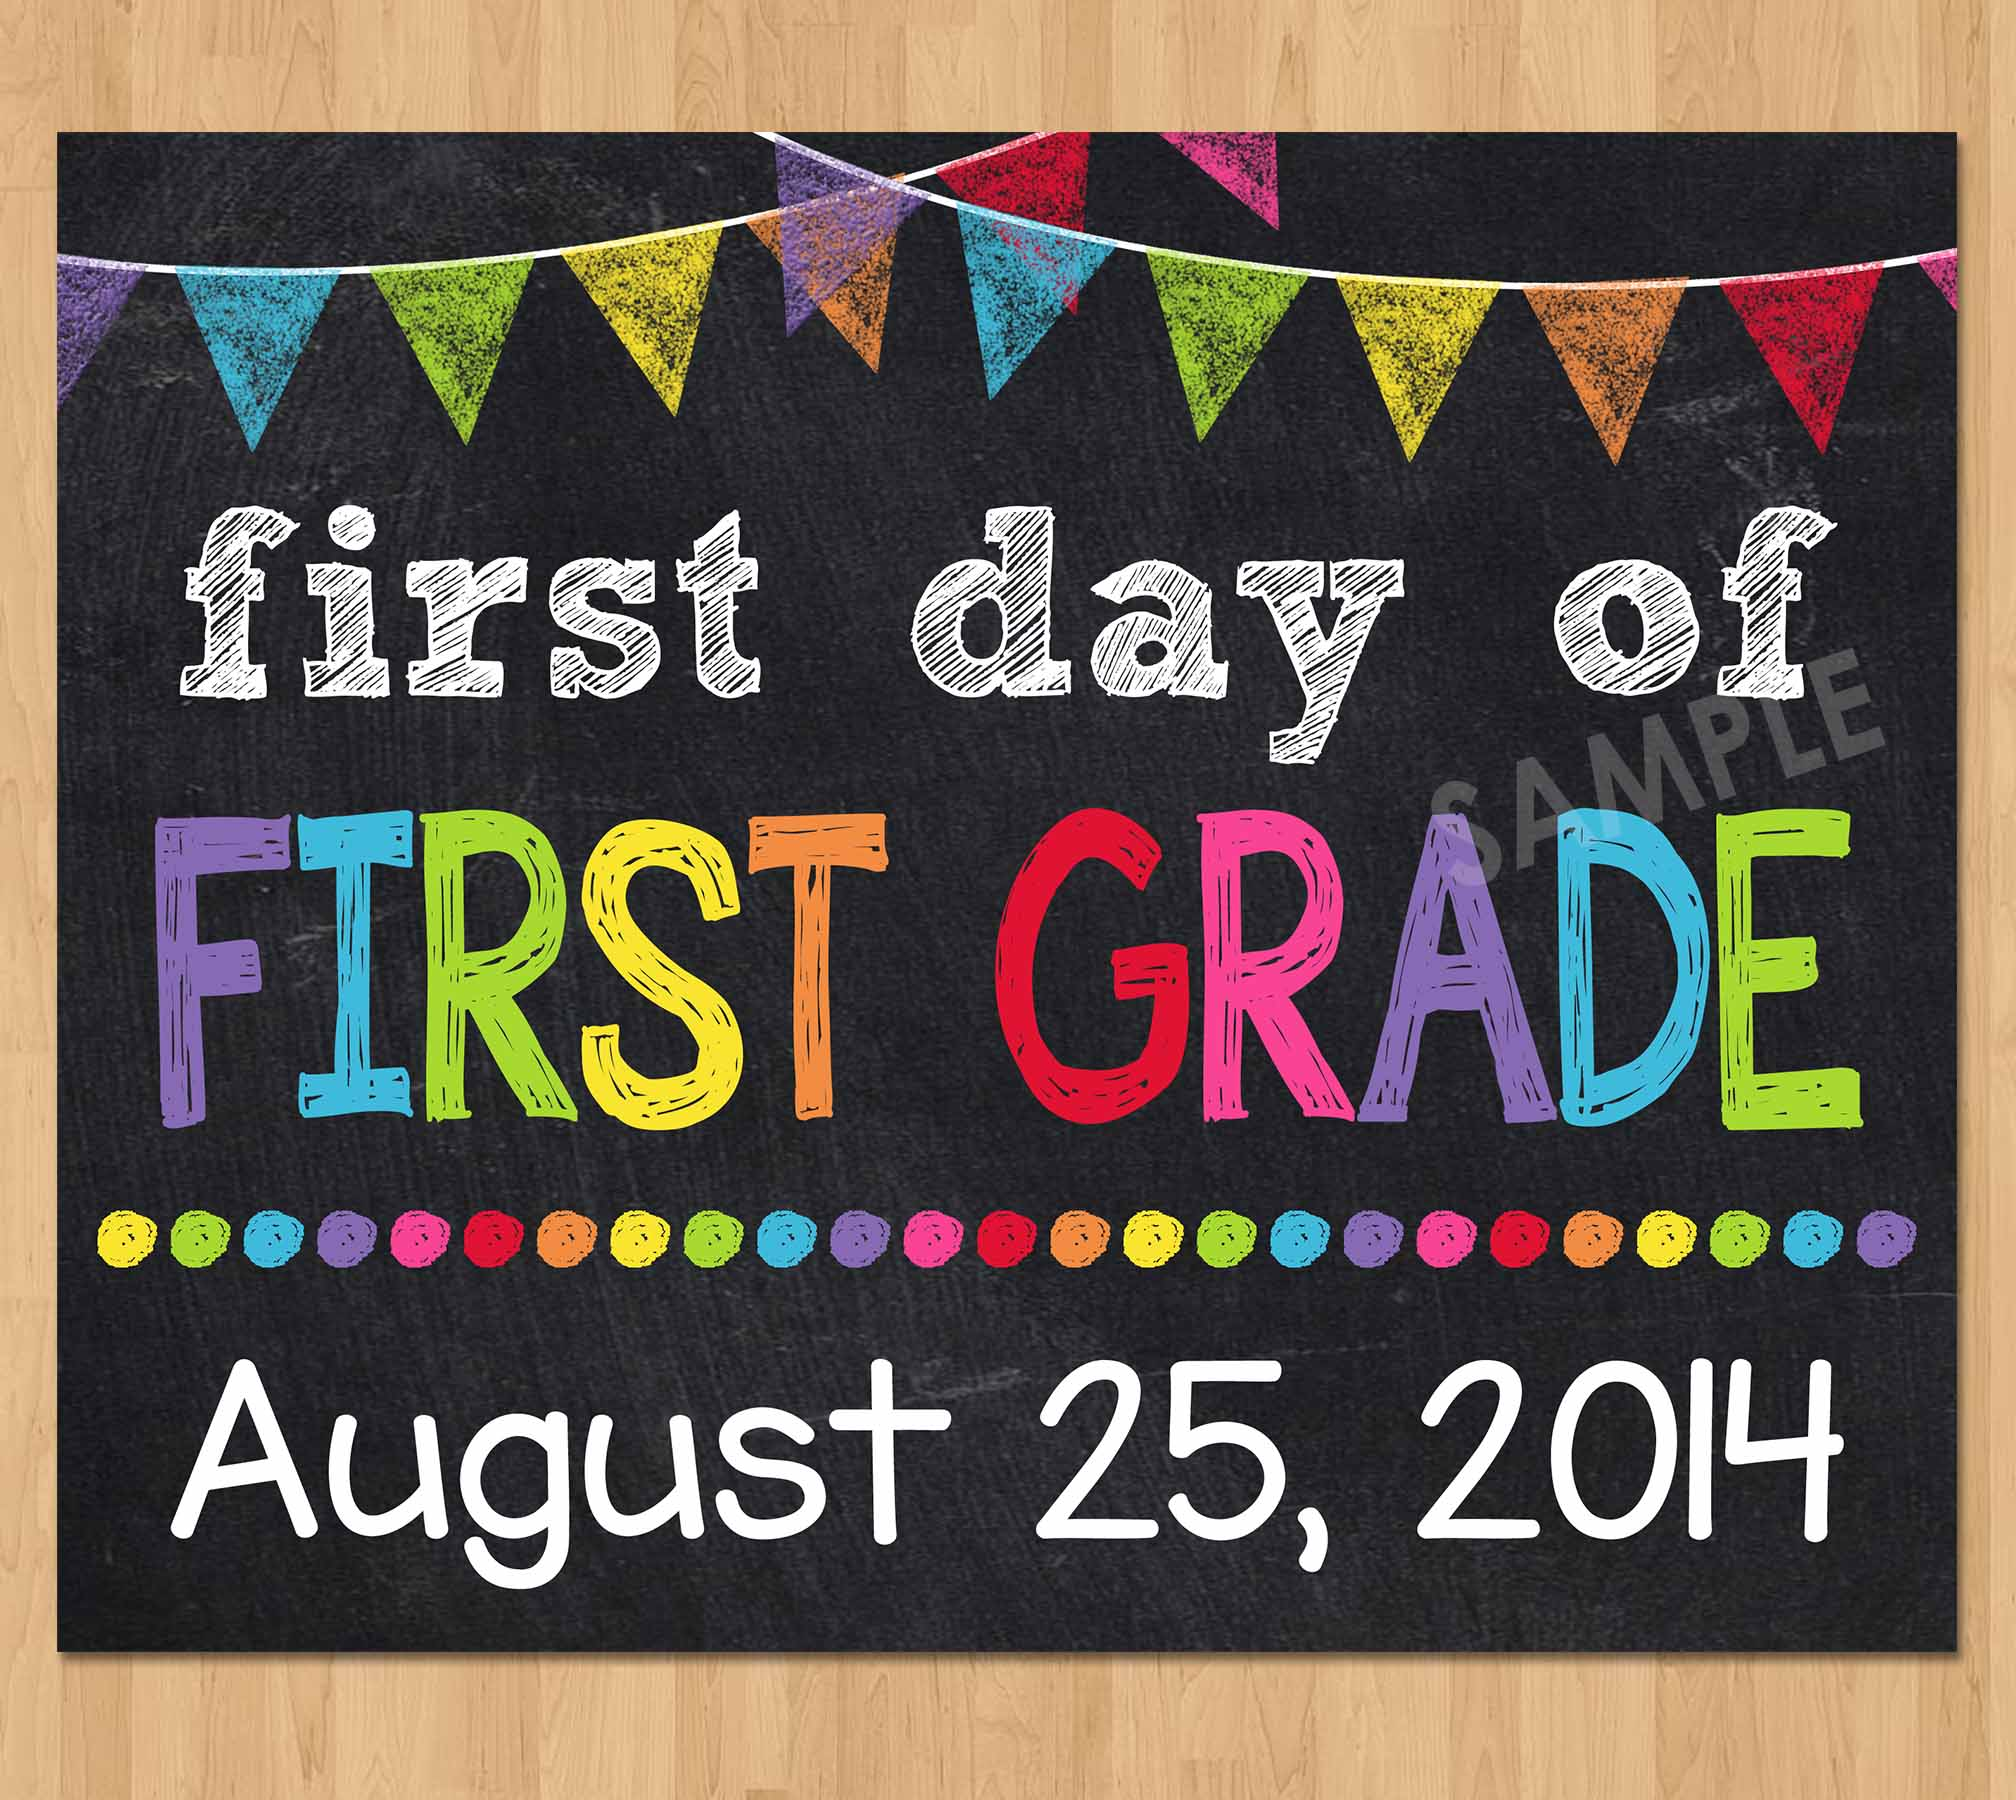 photo about First Day of School Sign Printable titled To start with Working day of To start with Quality Signal, Very first Working day of University Chalkboard Indication Printable Image Prop, ANY Dimension or Quality